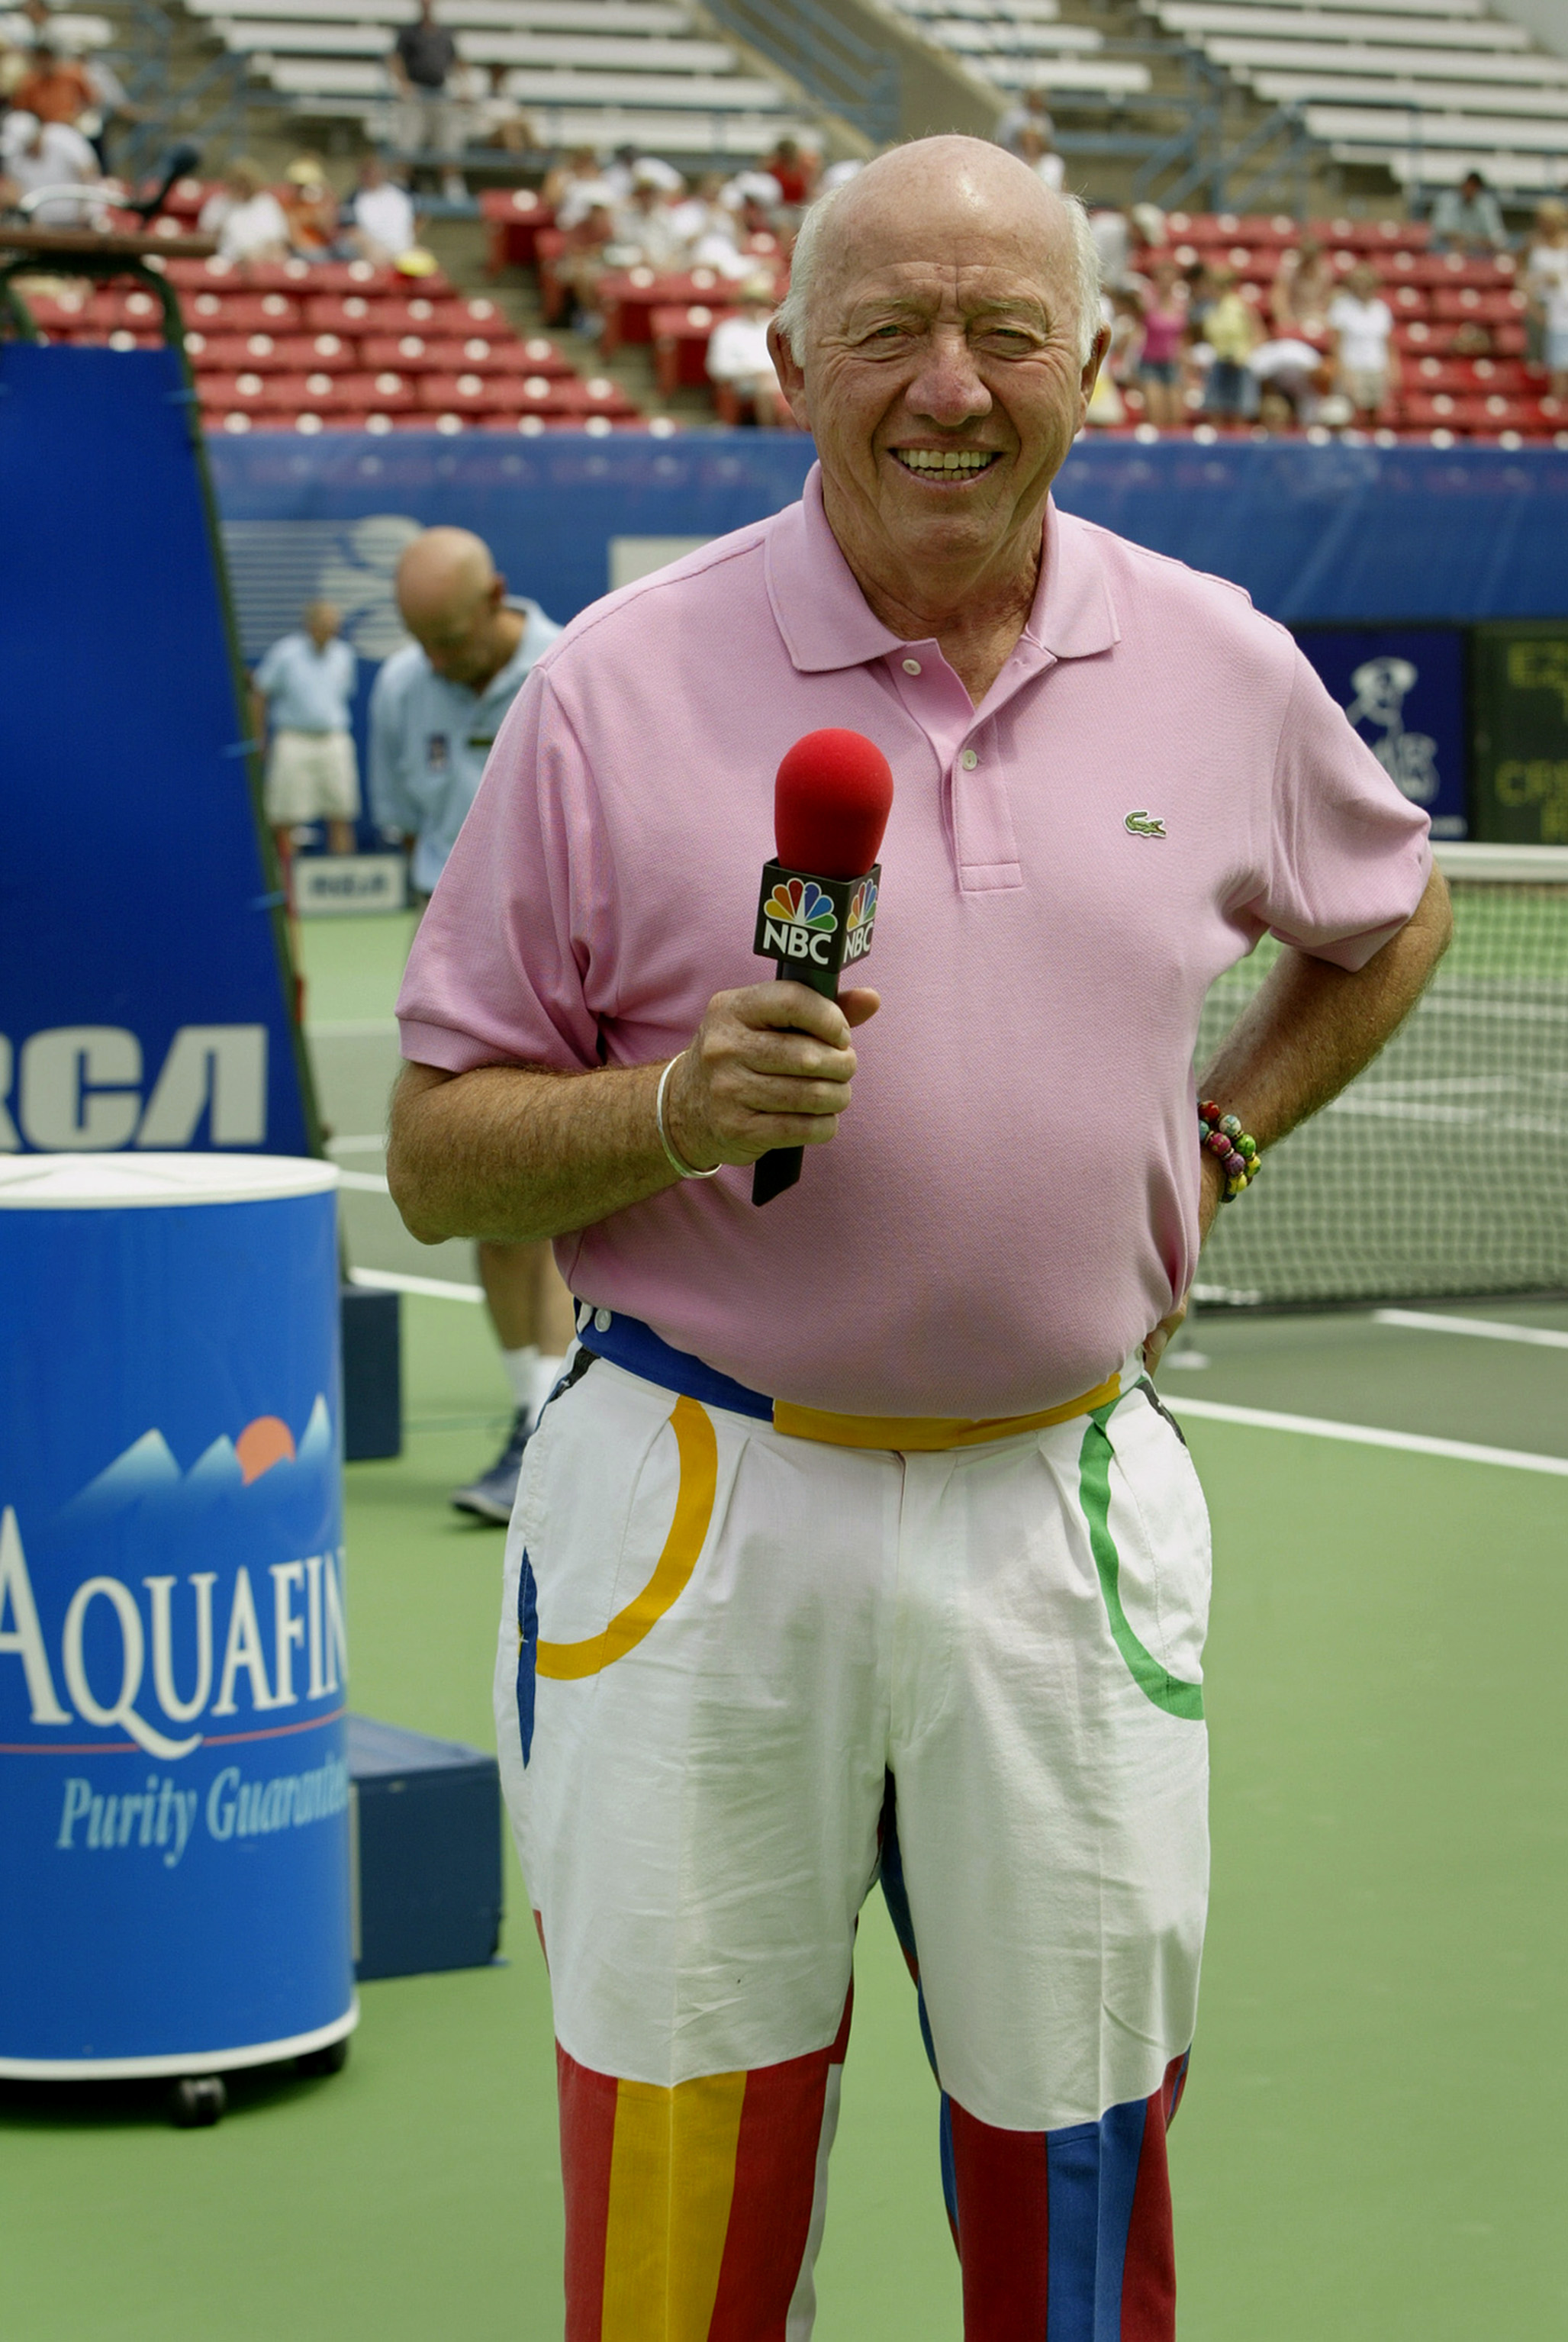 INDIANAPOLIS - JULY 26:  Bud Collins commentates for NBC as Andy Roddick of the USA takes on Sjeng Schalken of the Netherlands during the semifinals of the 2003 RCA Championships at the Indianapolis Tennis Center on July 26, 2003 in Indianapolis, Indiana.